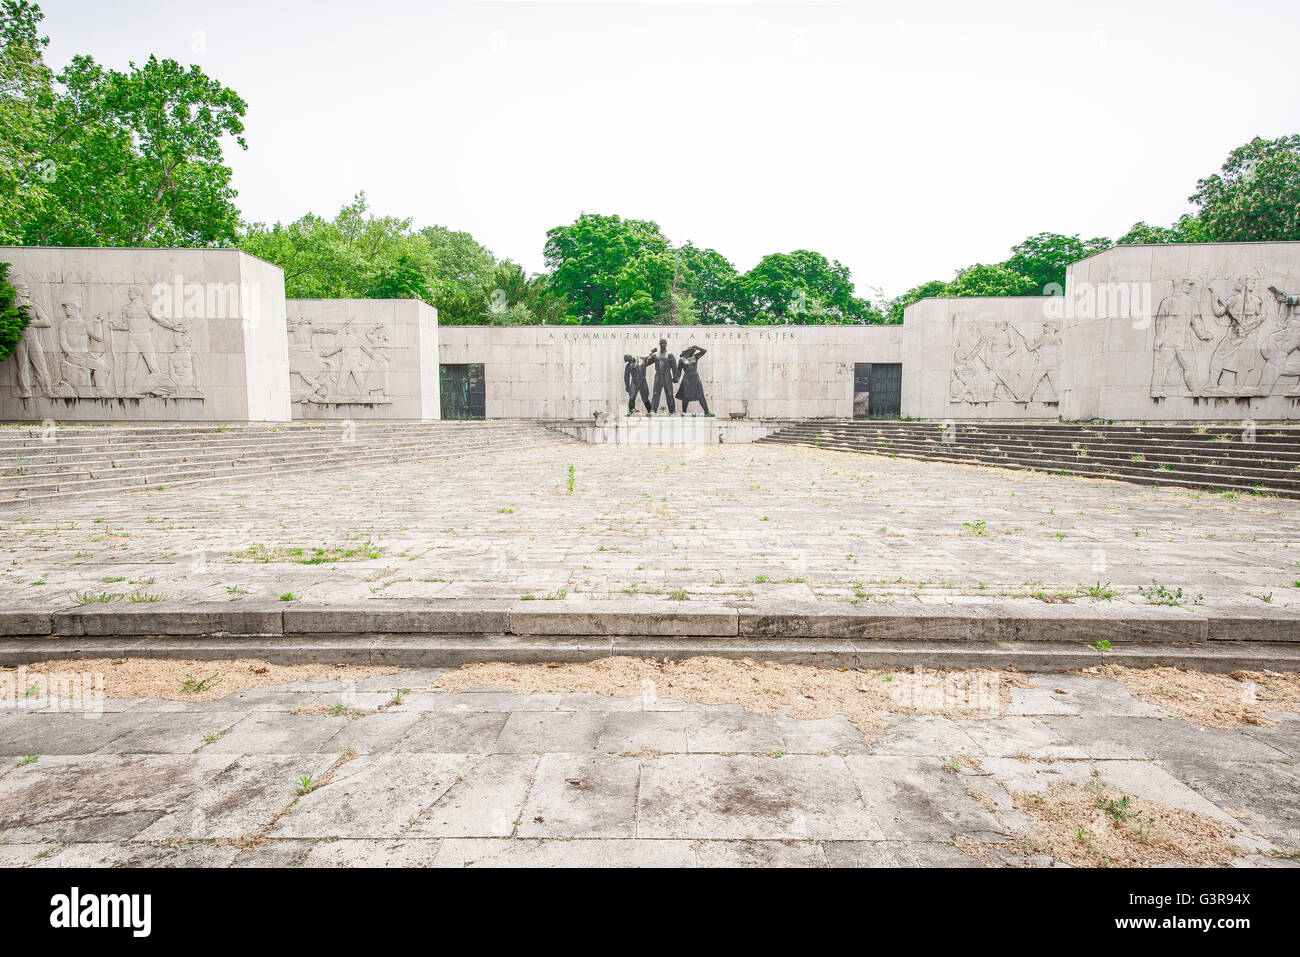 Hungary communism, view of the Communist Pantheon Of The Working Class Movement, Kerepesi cemetery Budapest, Hungary - Stock Image